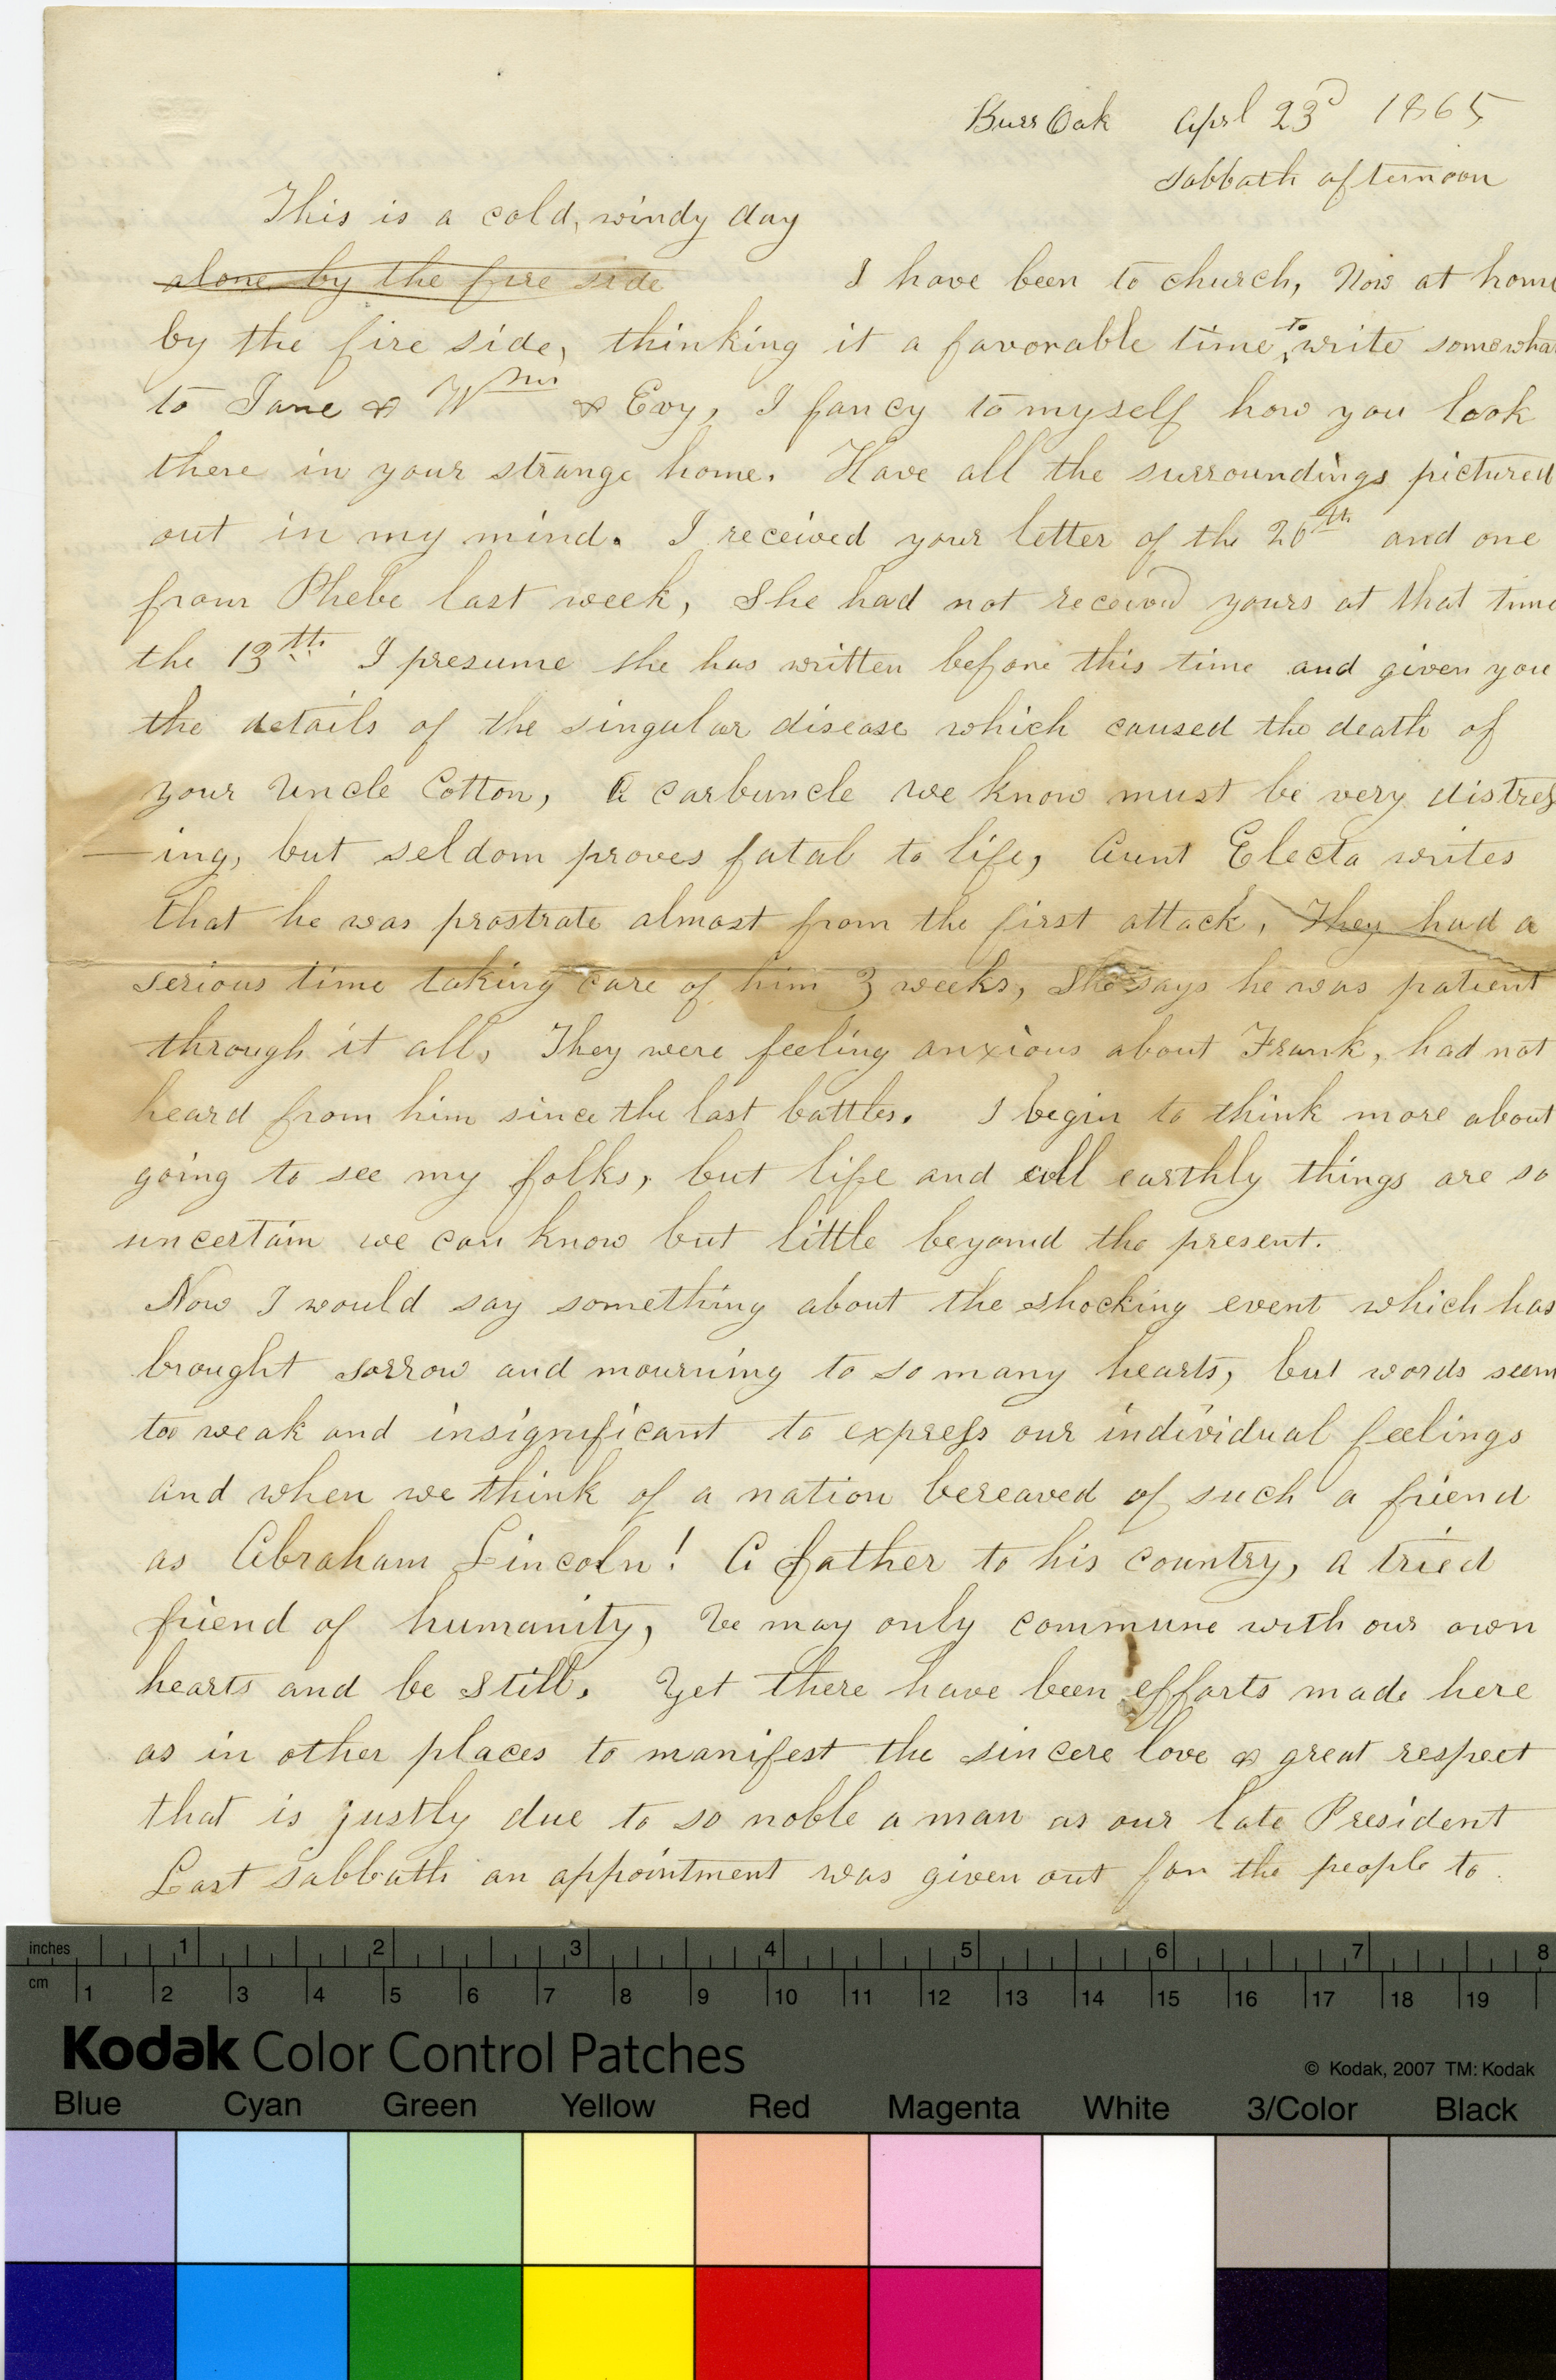 Handwritten letter to Jane Betts from Harriet Farley, April 23, 1865